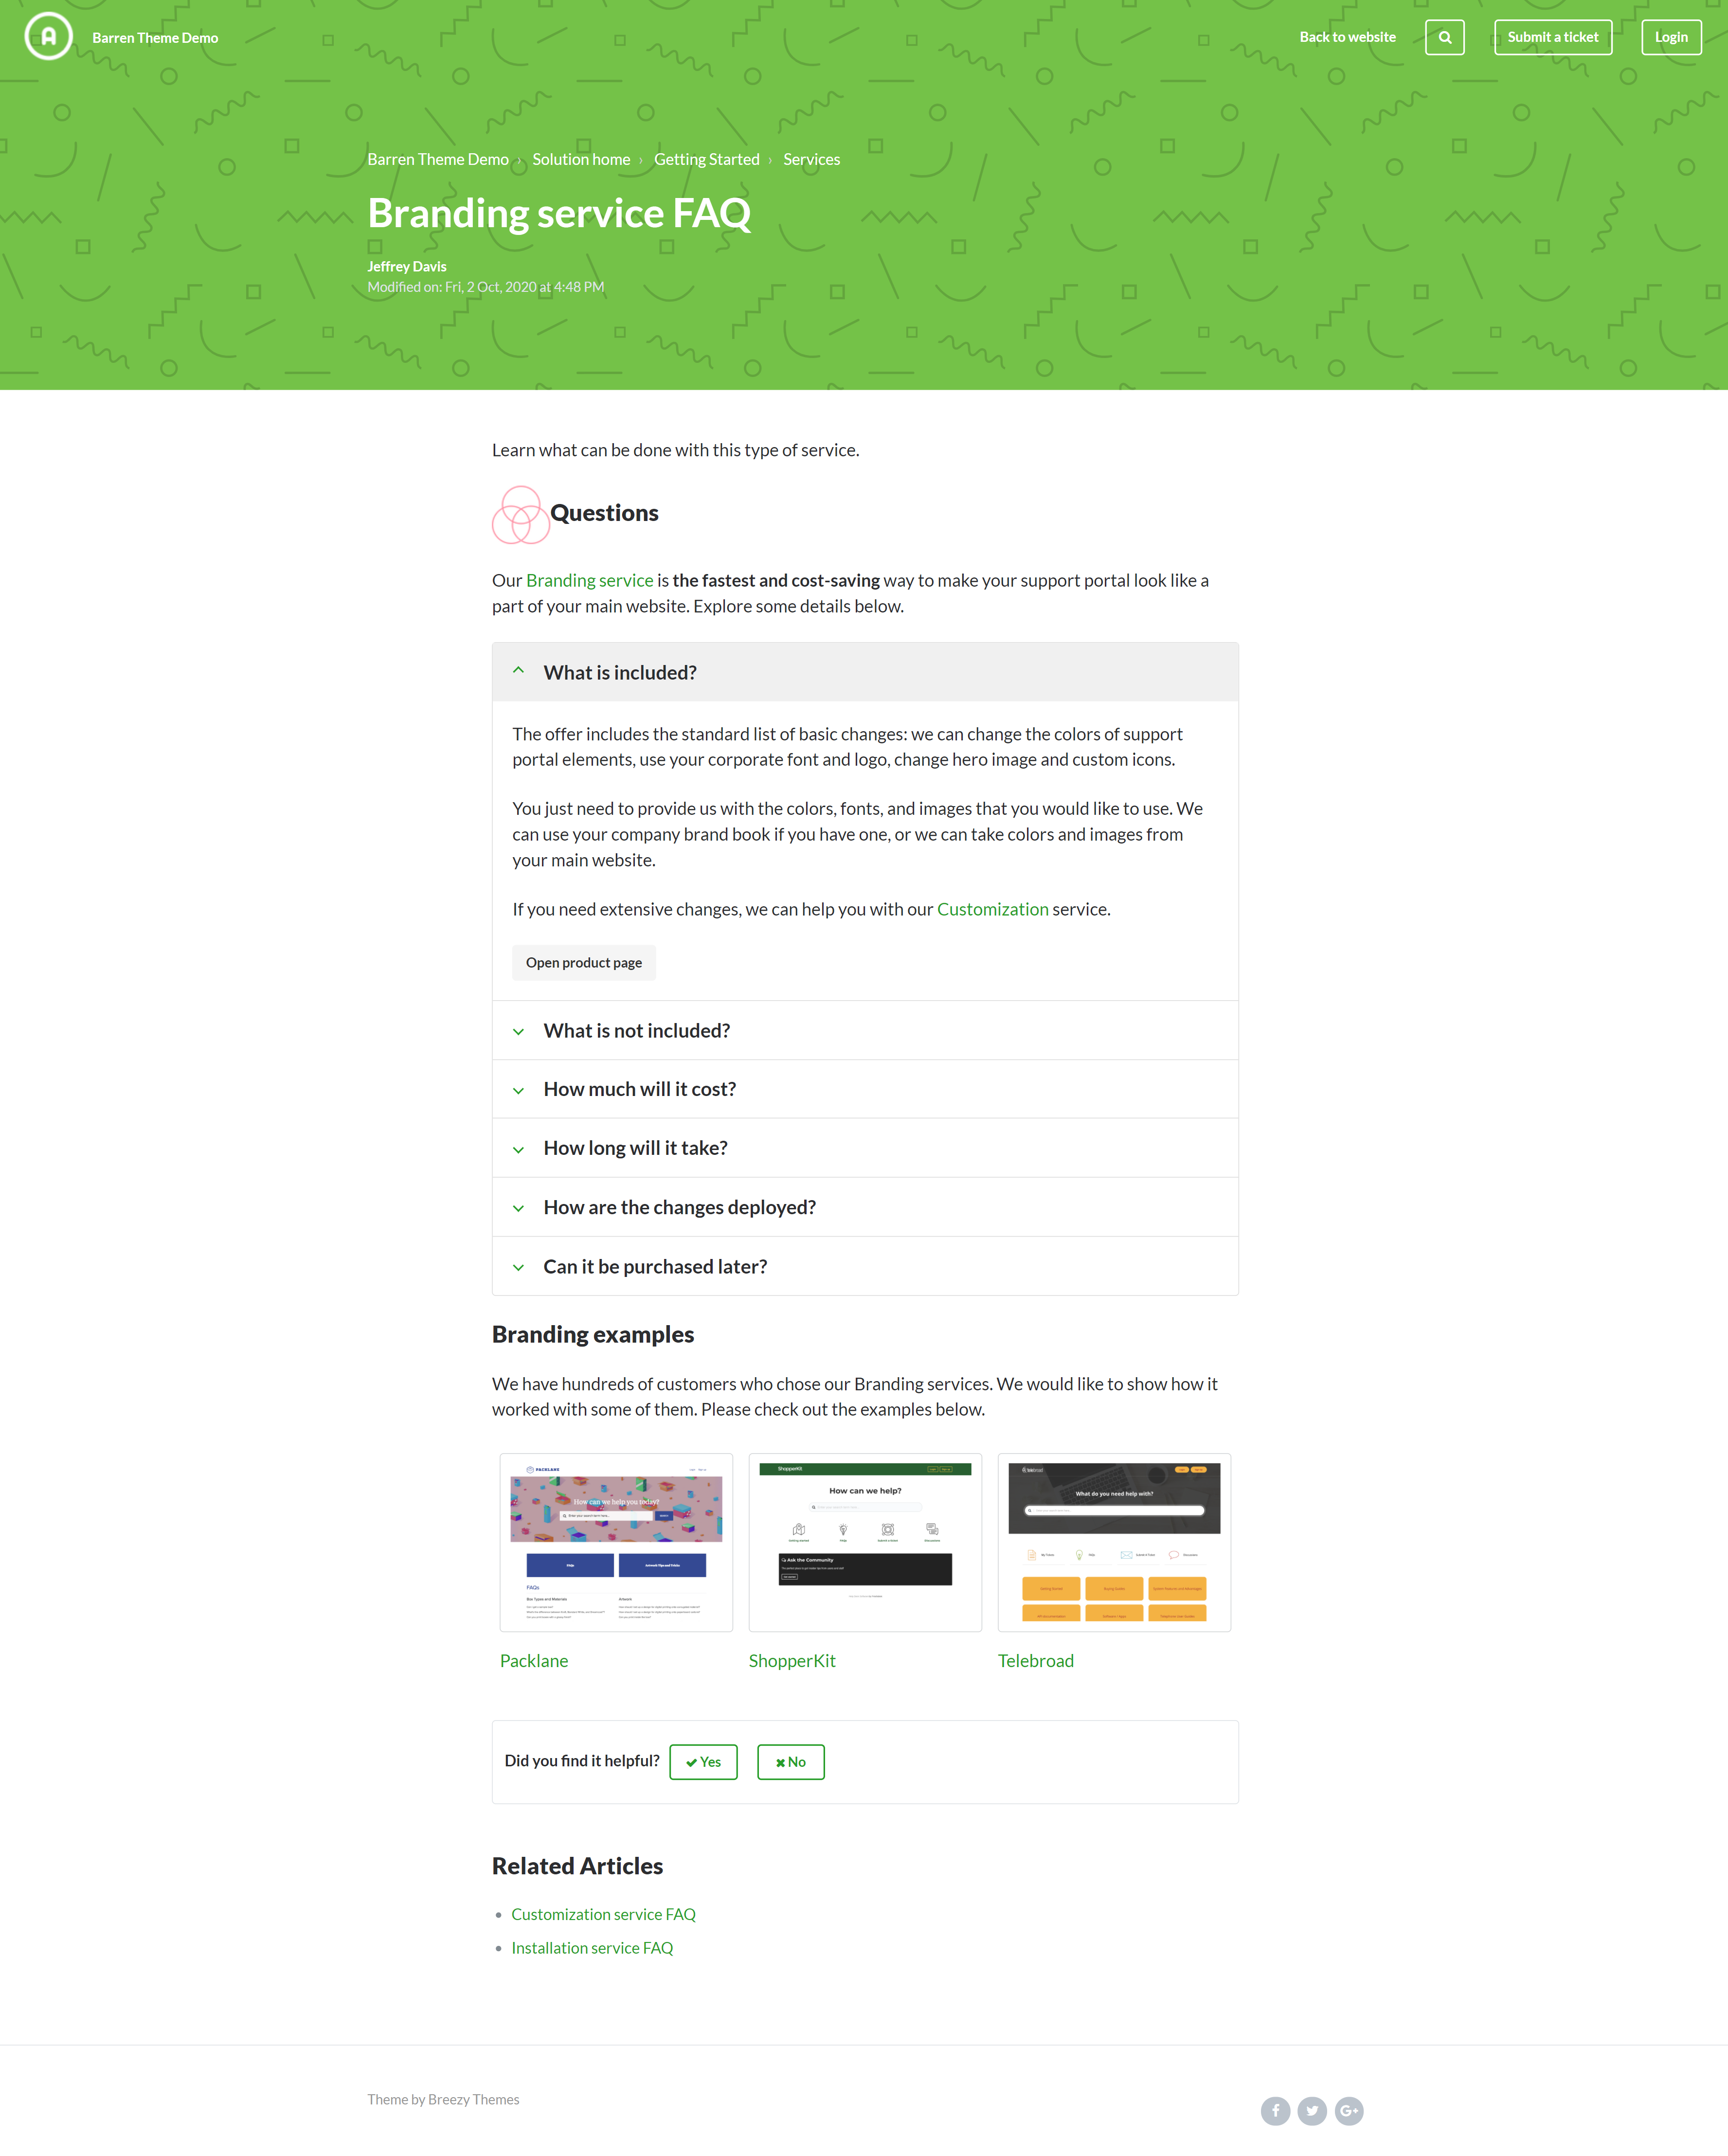 Barren Green Freshdesk customer portal theme with formatting components in articles